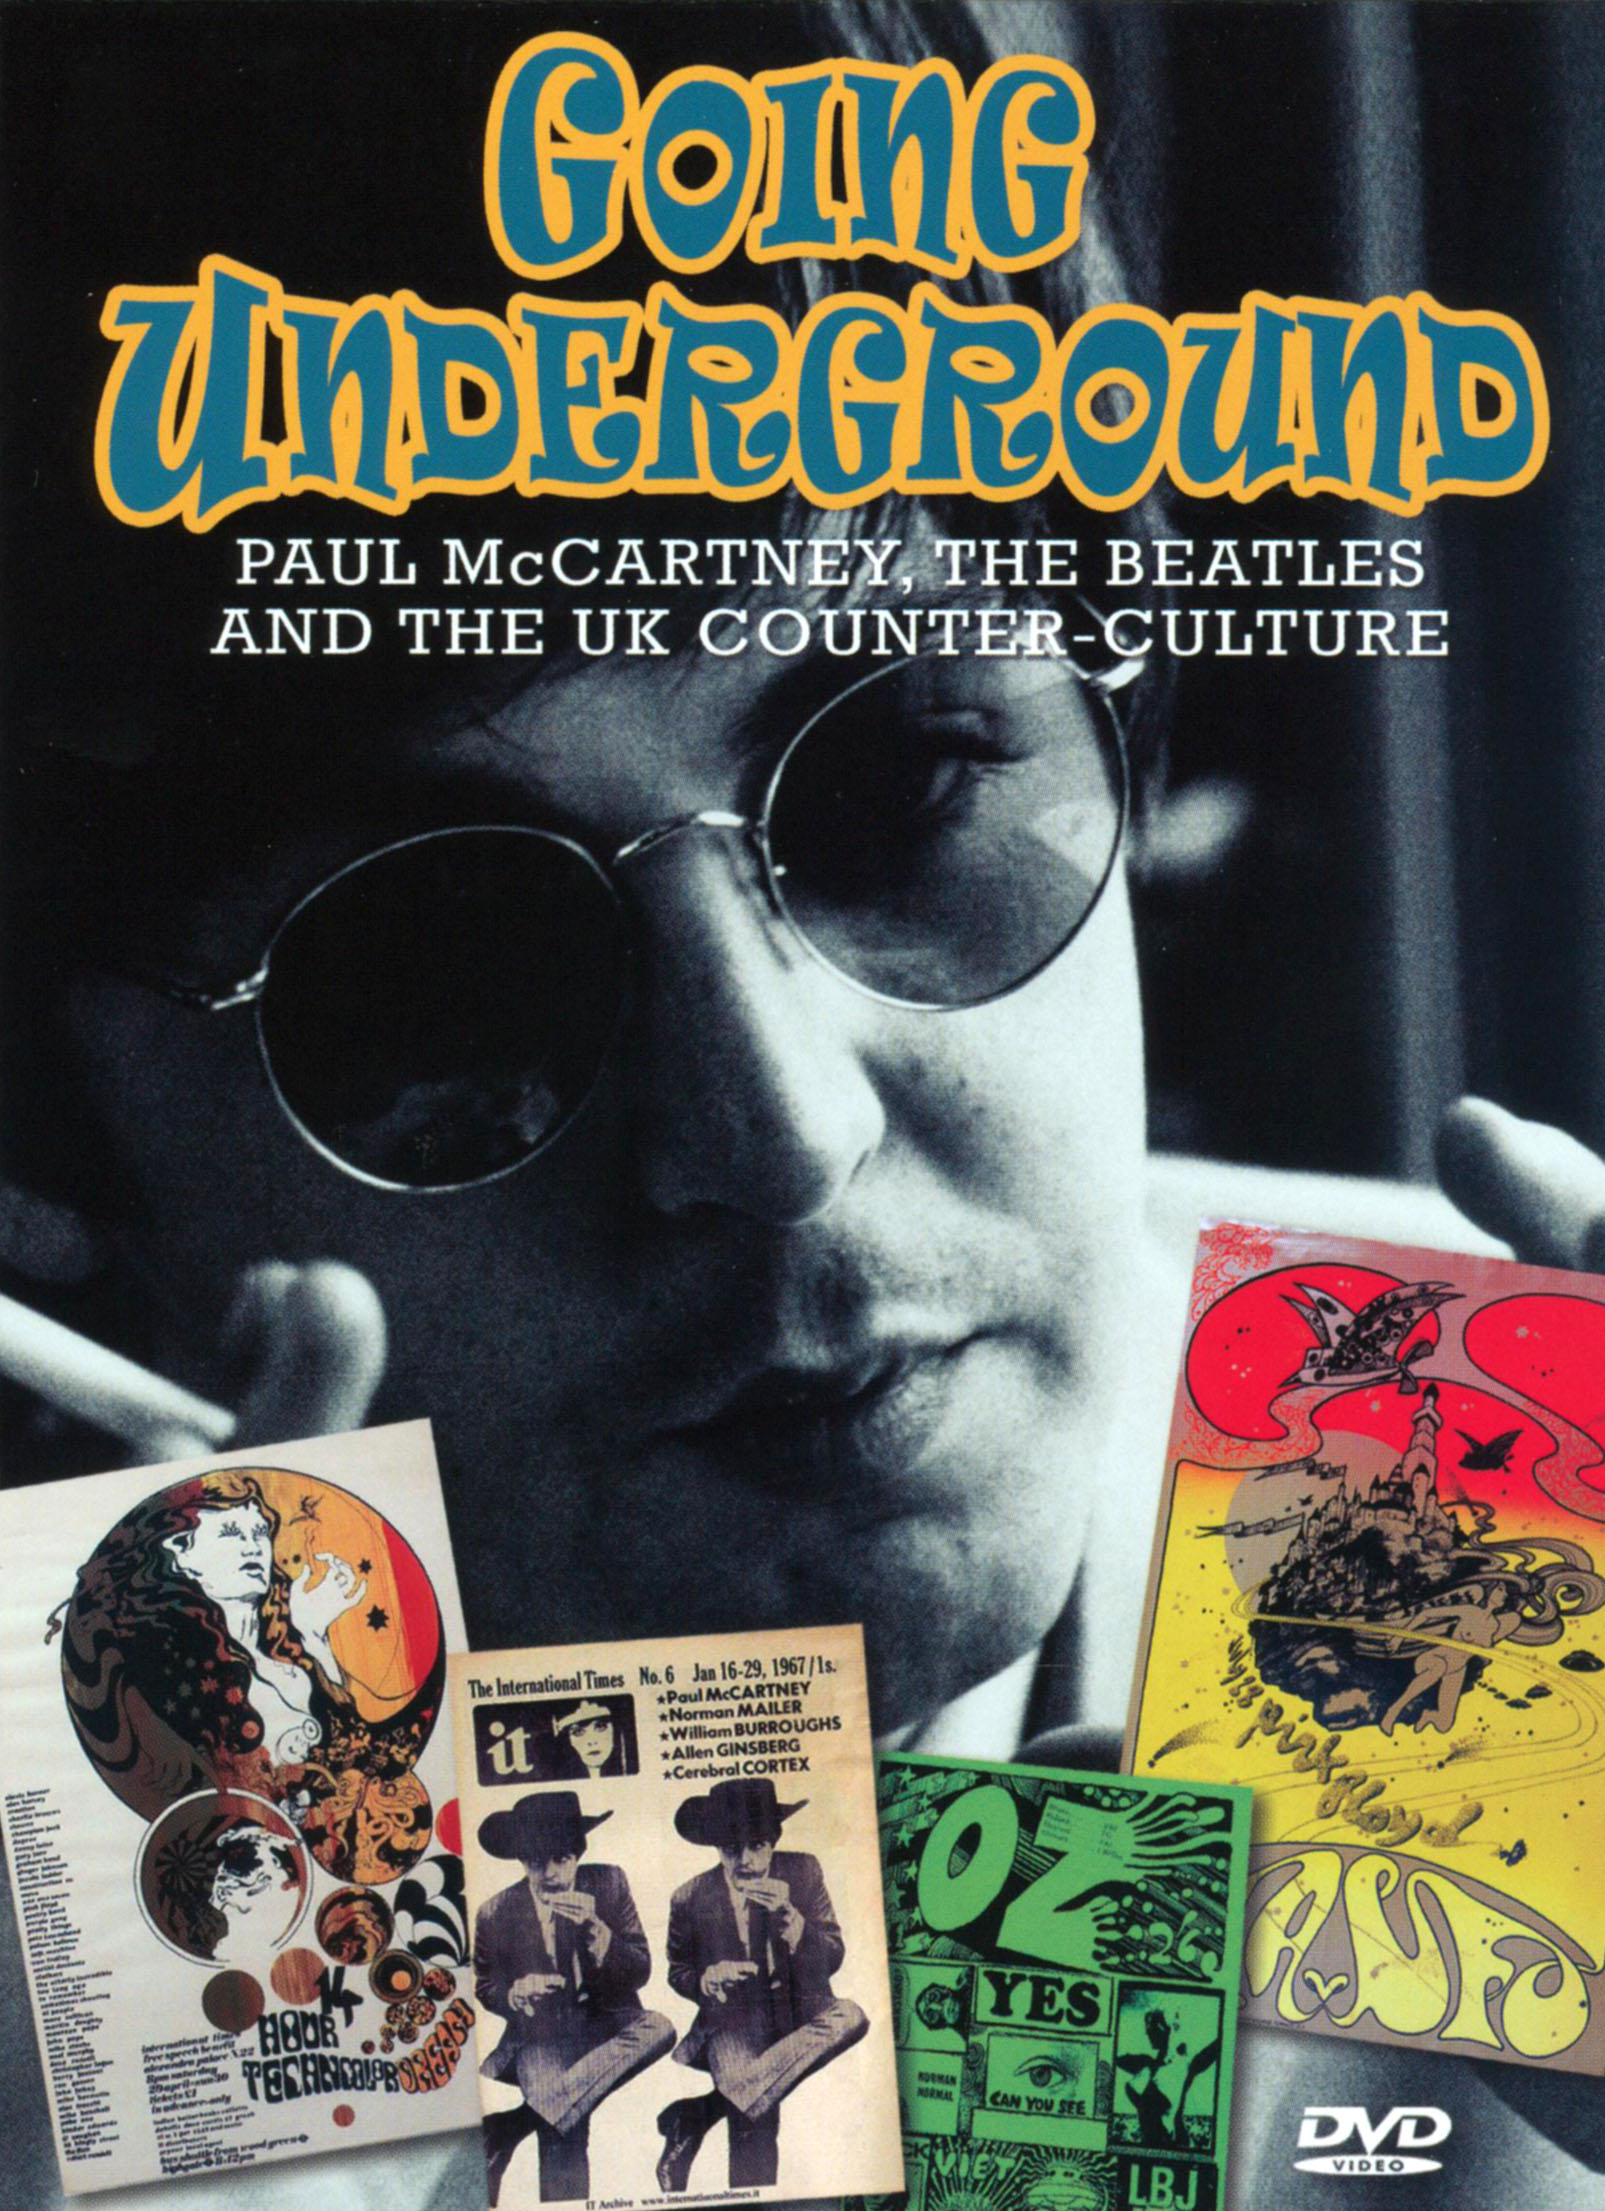 Going Underground: Paul McCartney, the Beatles and the UK Counter-Culture